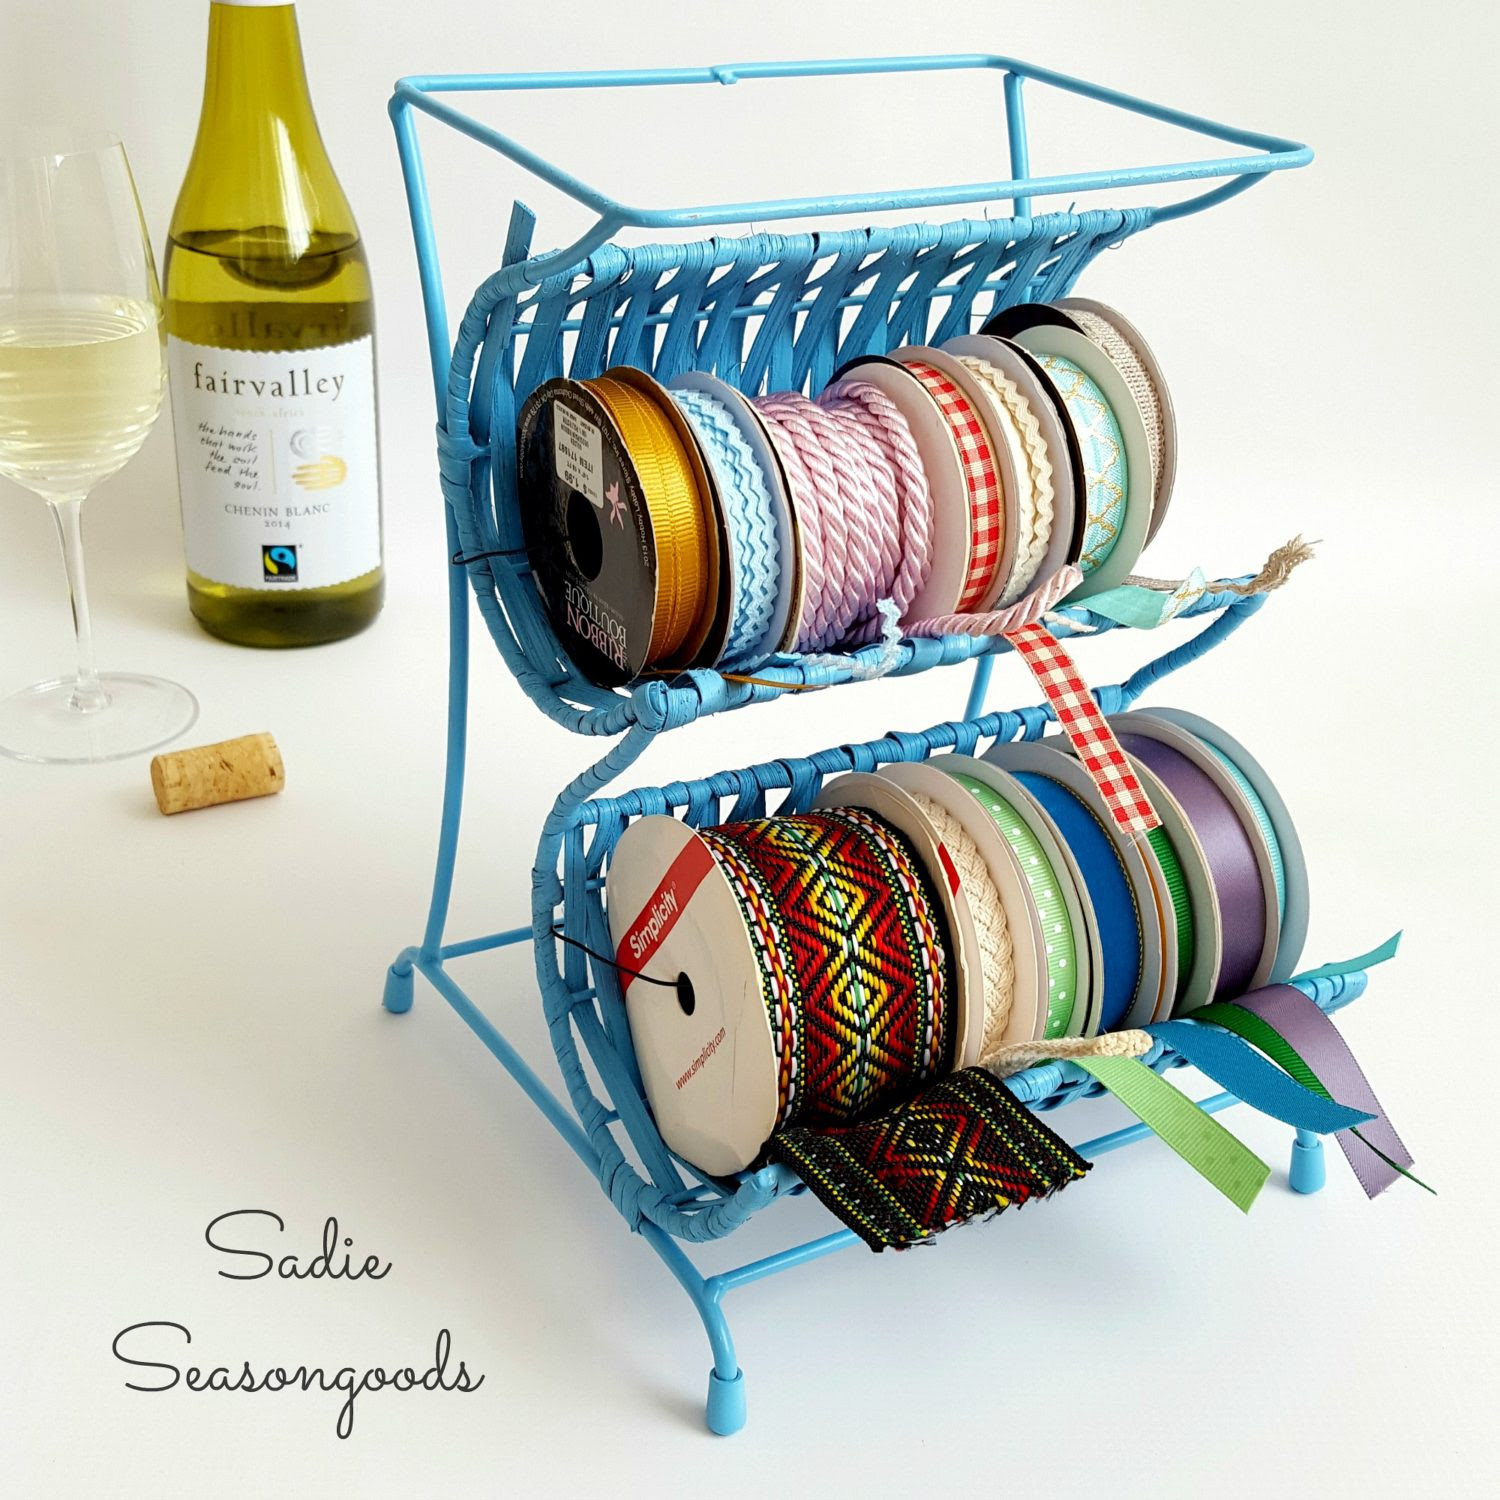 Wine Rack To Ribbon Cradle - Sadie Seasongoods - HMLP 82 - Feature